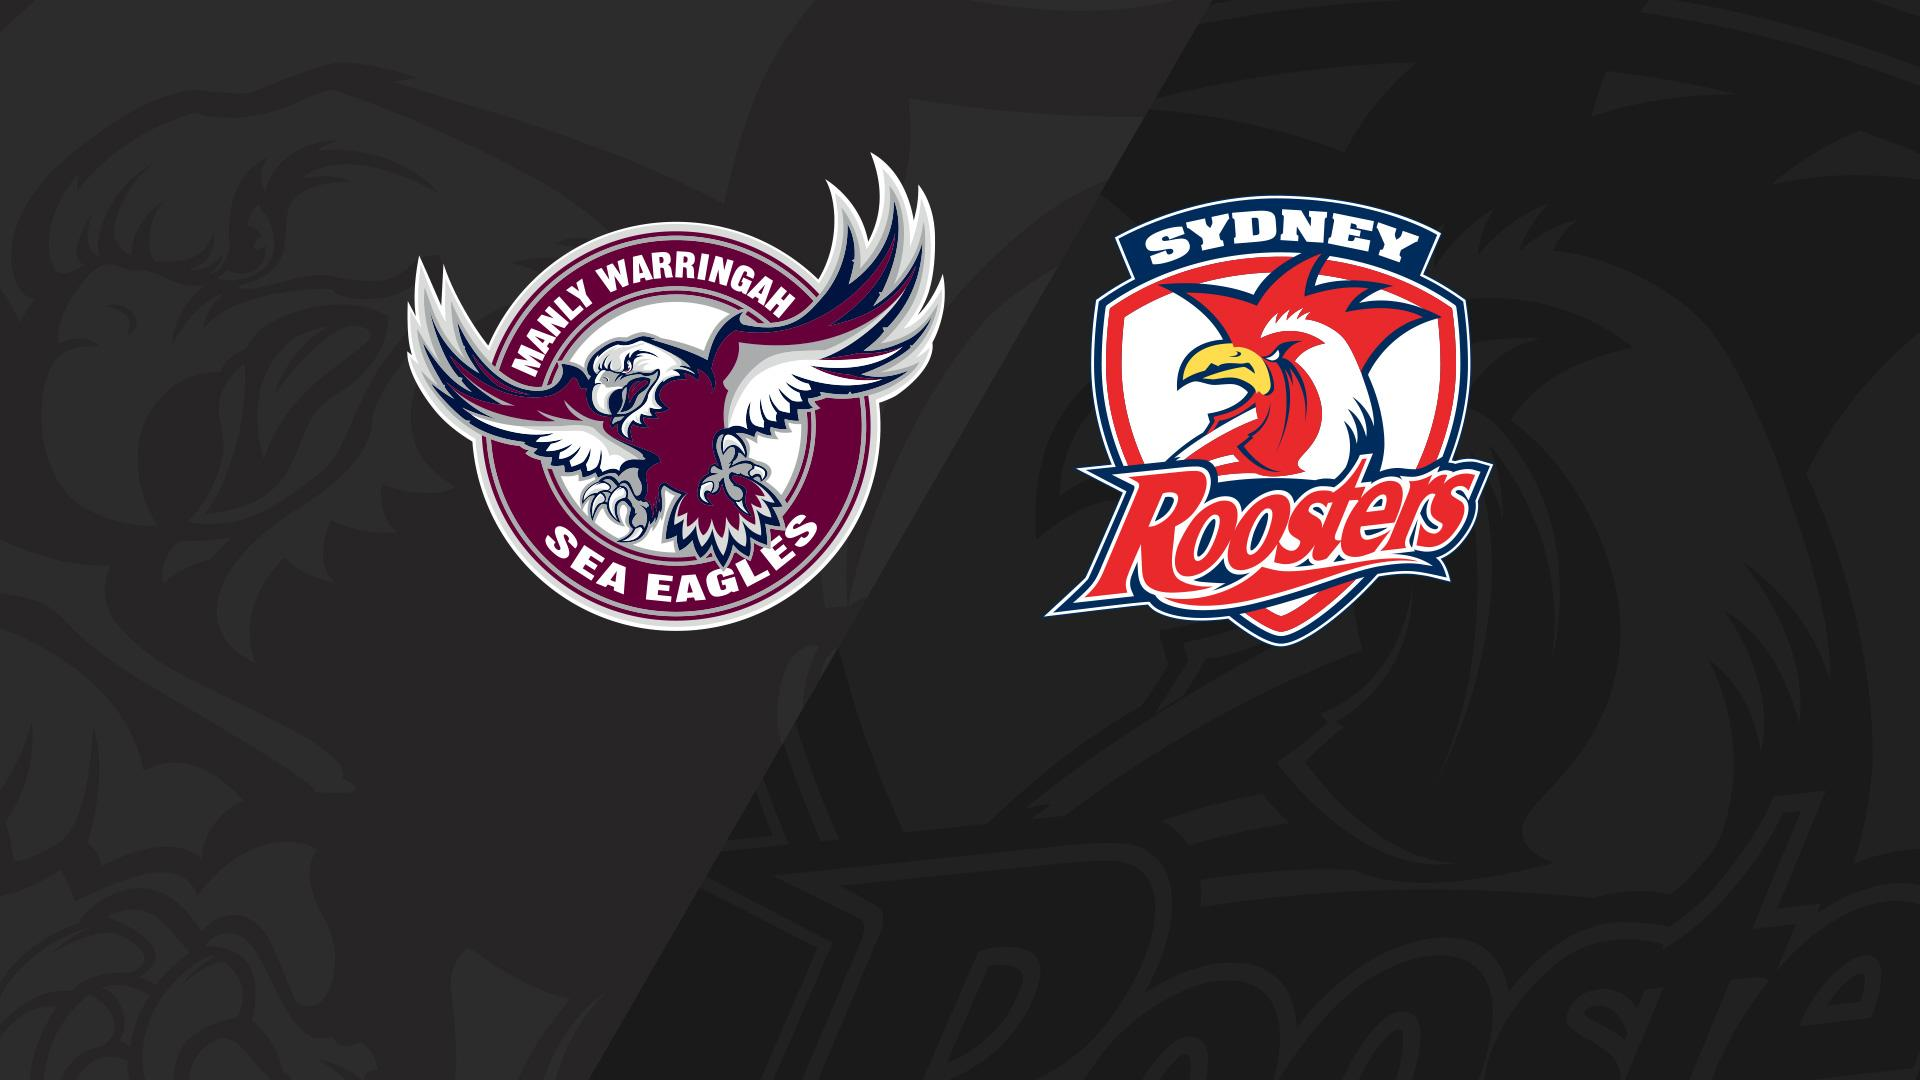 Full Match Replay: Sea Eagles v Roosters - Round 19, 2018